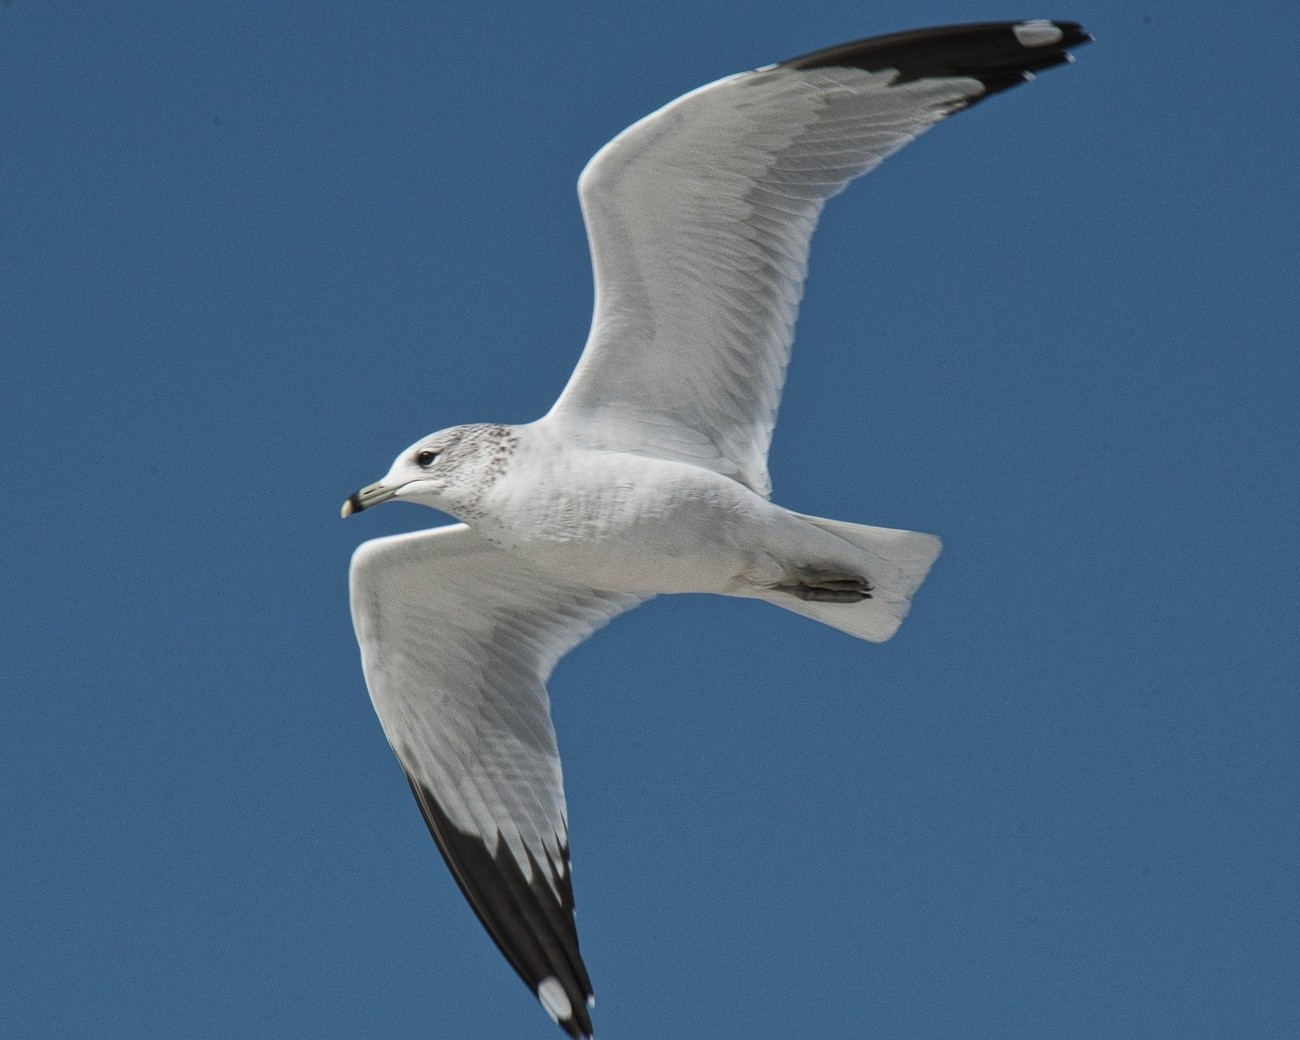 Ring-billed Gull, widespread and abundantly found throughout the lower half of the US and south.  Photo taken on Siesta Key beach.